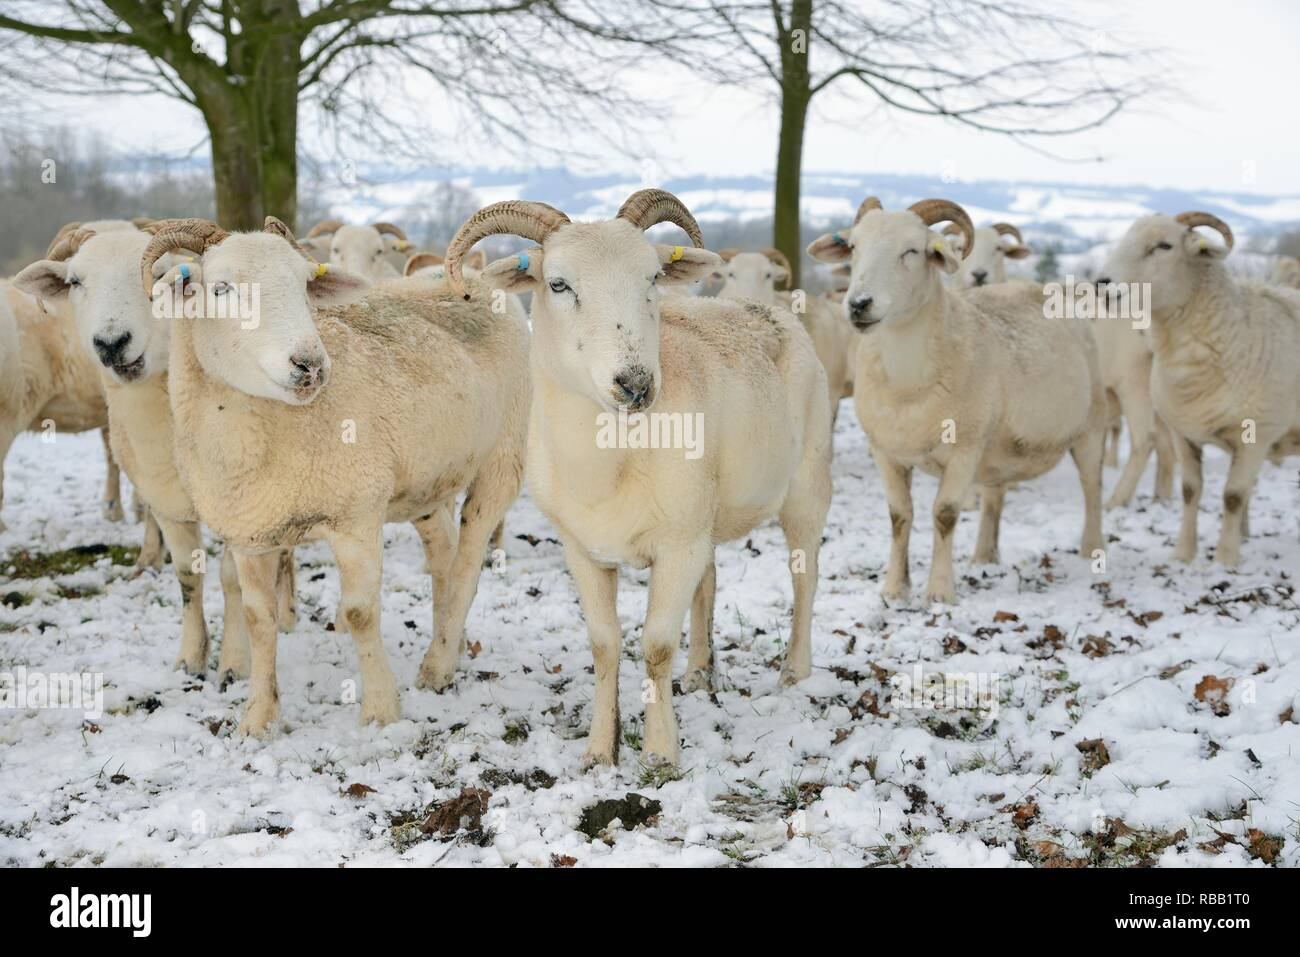 Herd of Wiltshire horn sheep (Ovis aries) standing in snow covered pastureland, Wiltshire, UK, March. - Stock Image